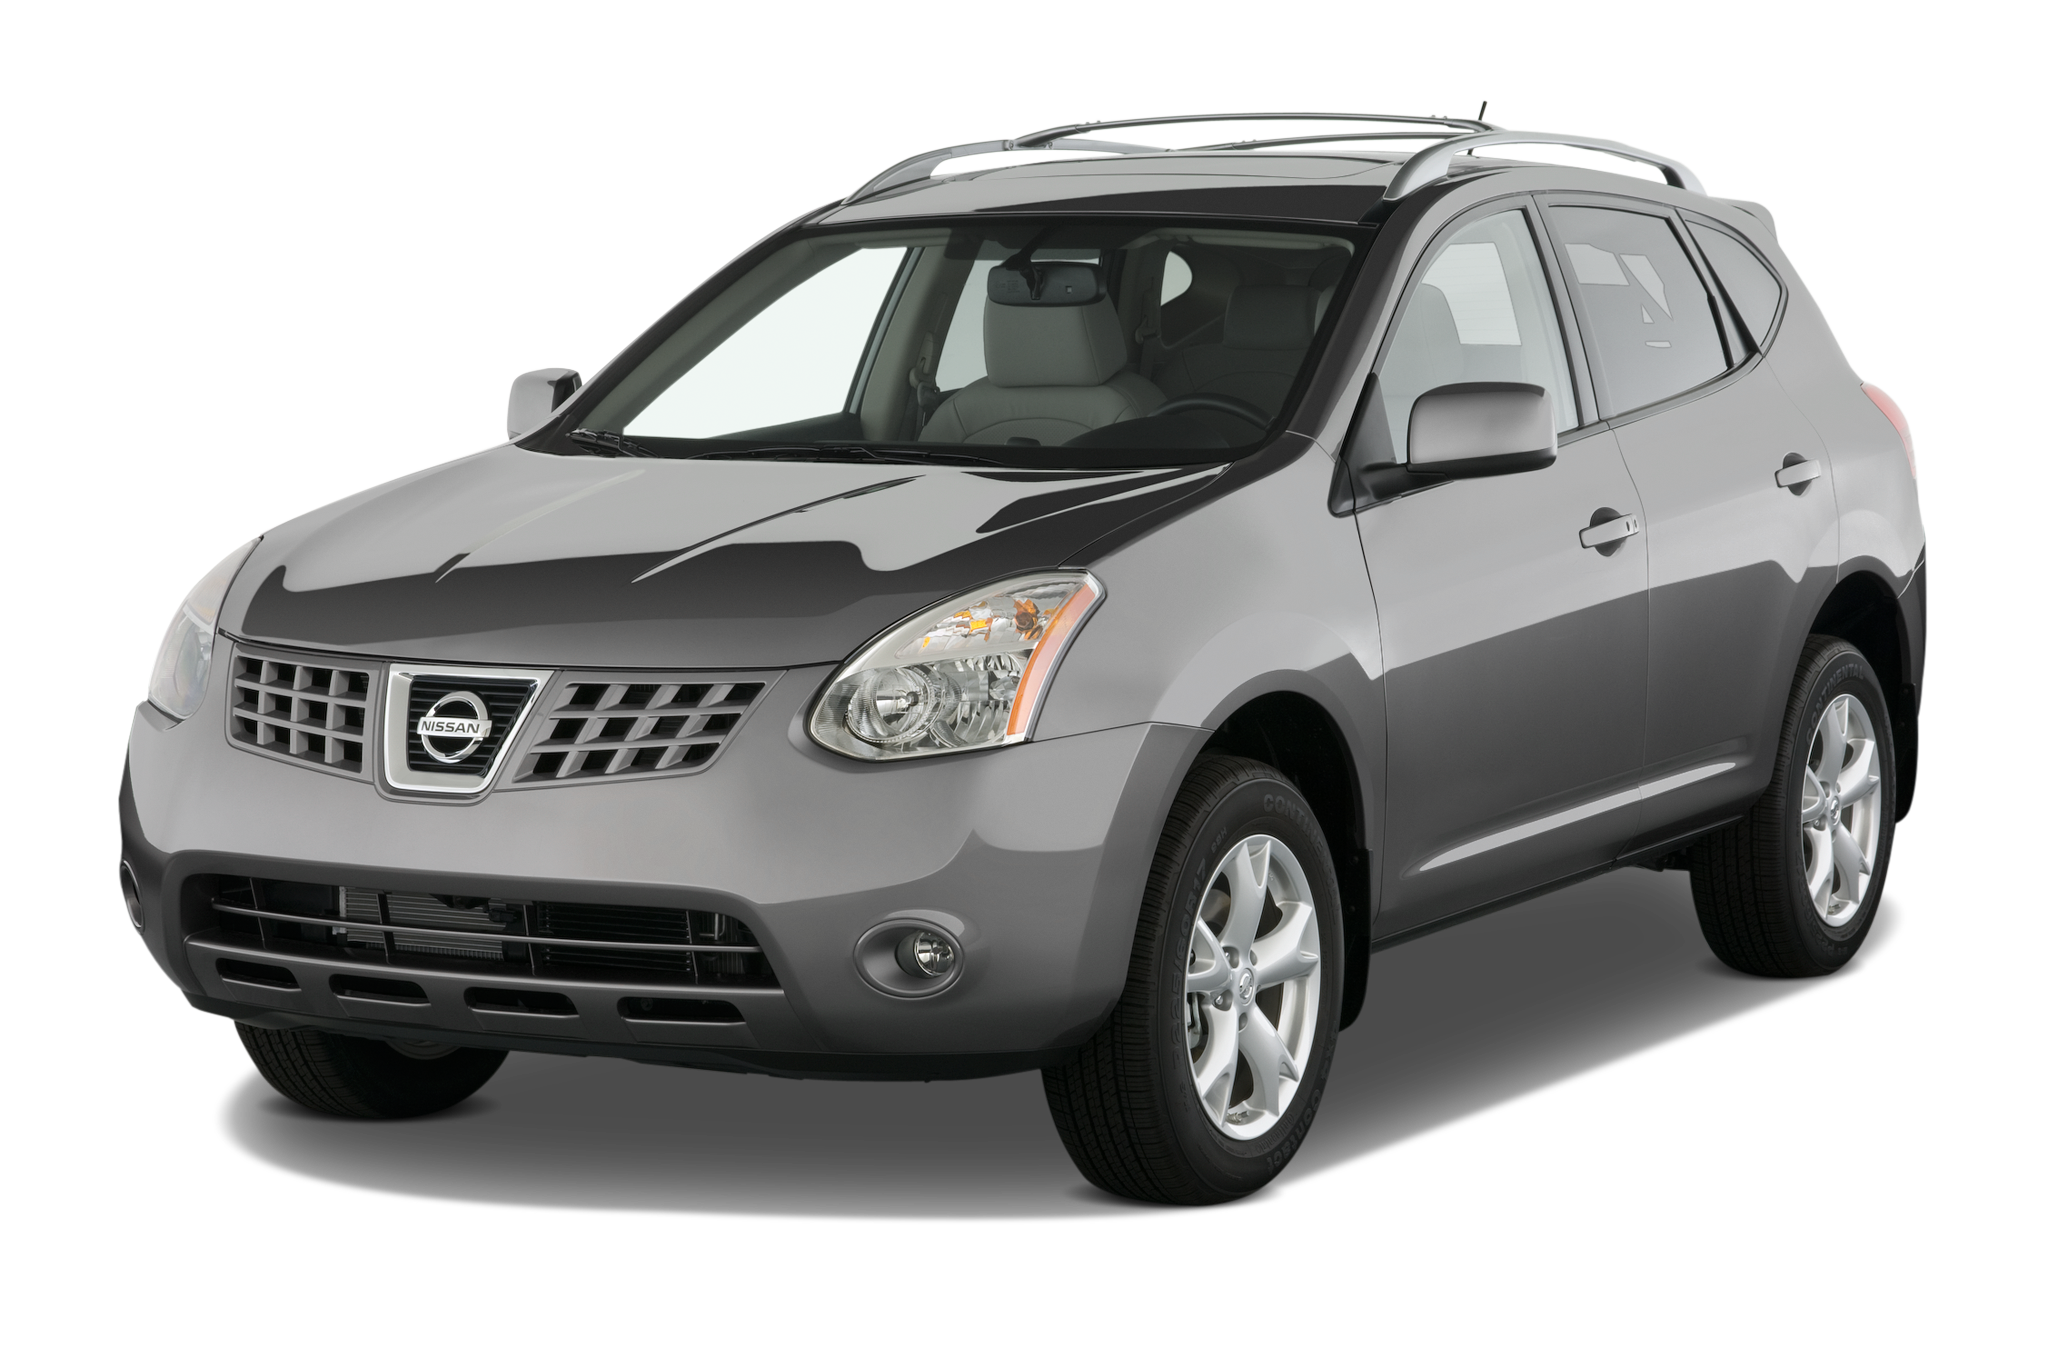 2010 nissan rogue overview msn autos. Black Bedroom Furniture Sets. Home Design Ideas